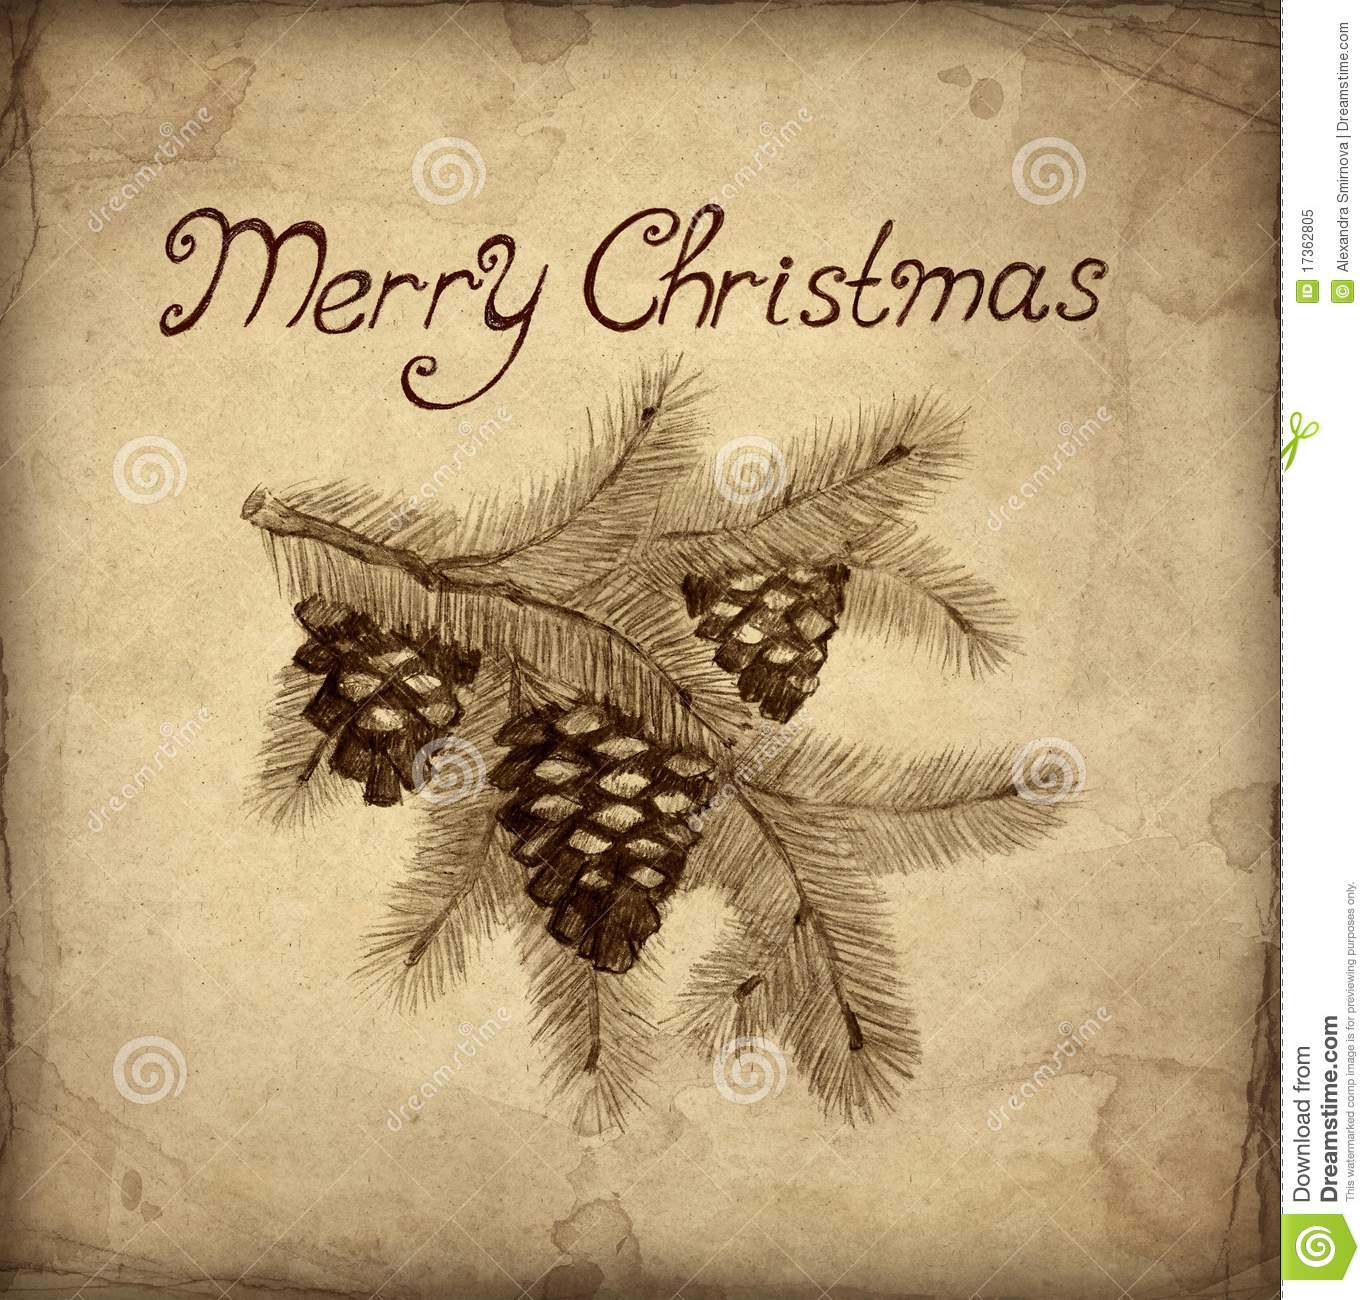 Old Christmas Greeting Card Stock Illustration - Illustration of ...